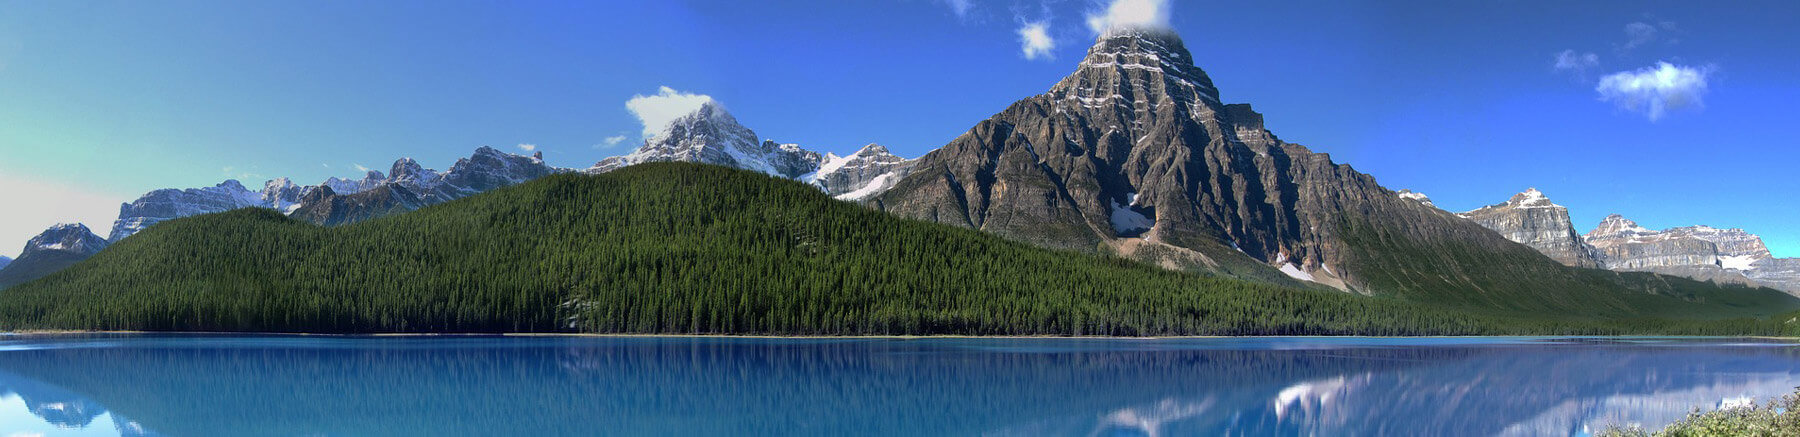 Mening van Onderstel Chephren, in de Mistaya vallei in Banff National Park in Canada